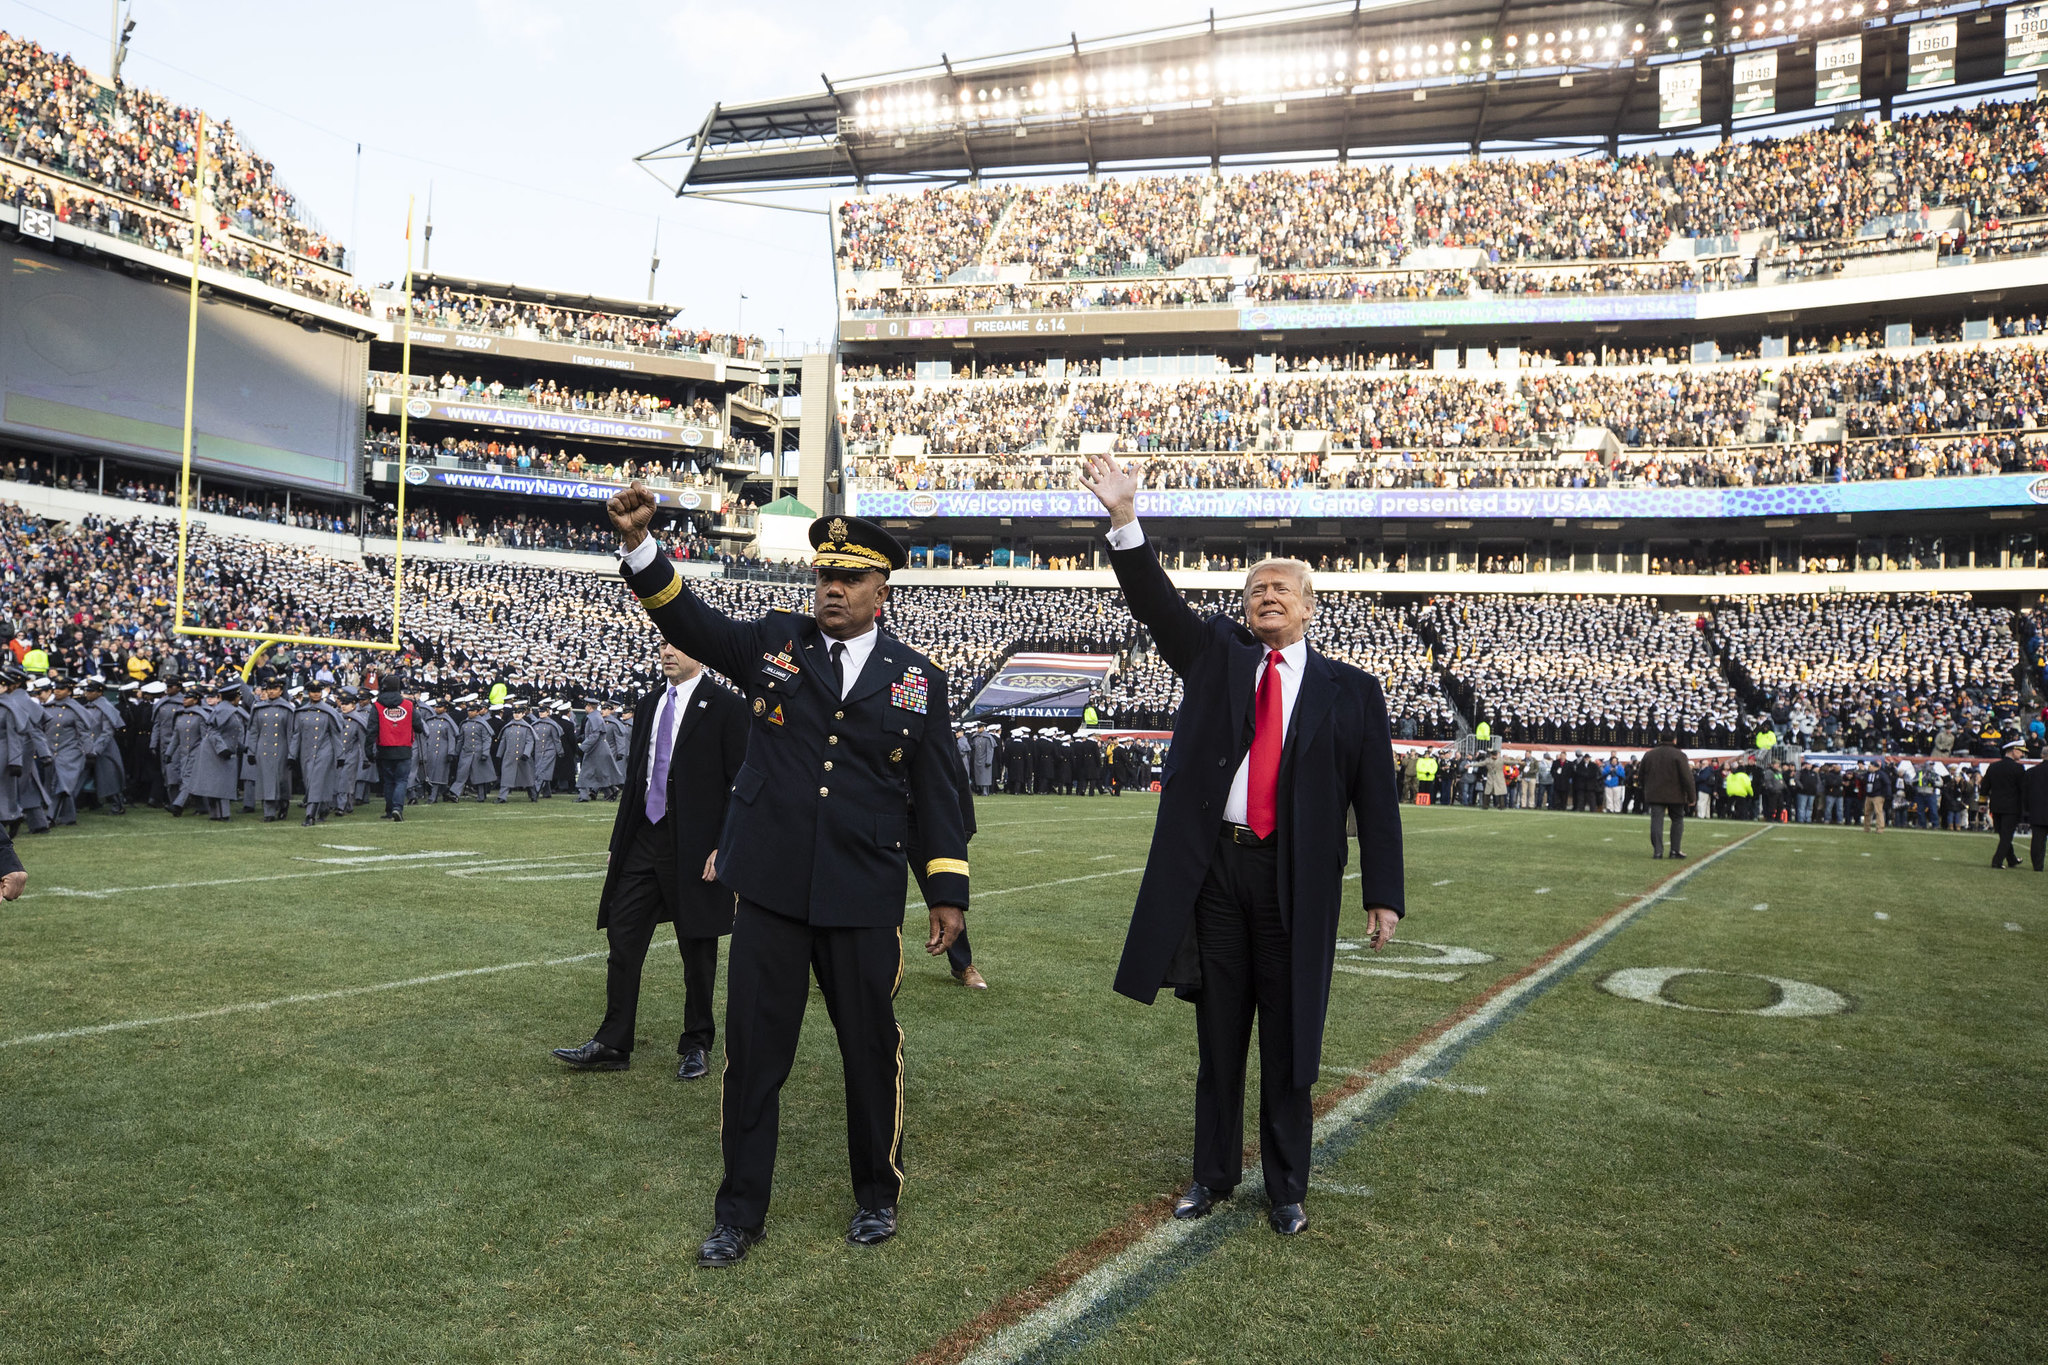 Donald Trump waves to the crowd at the Army-Navy football game